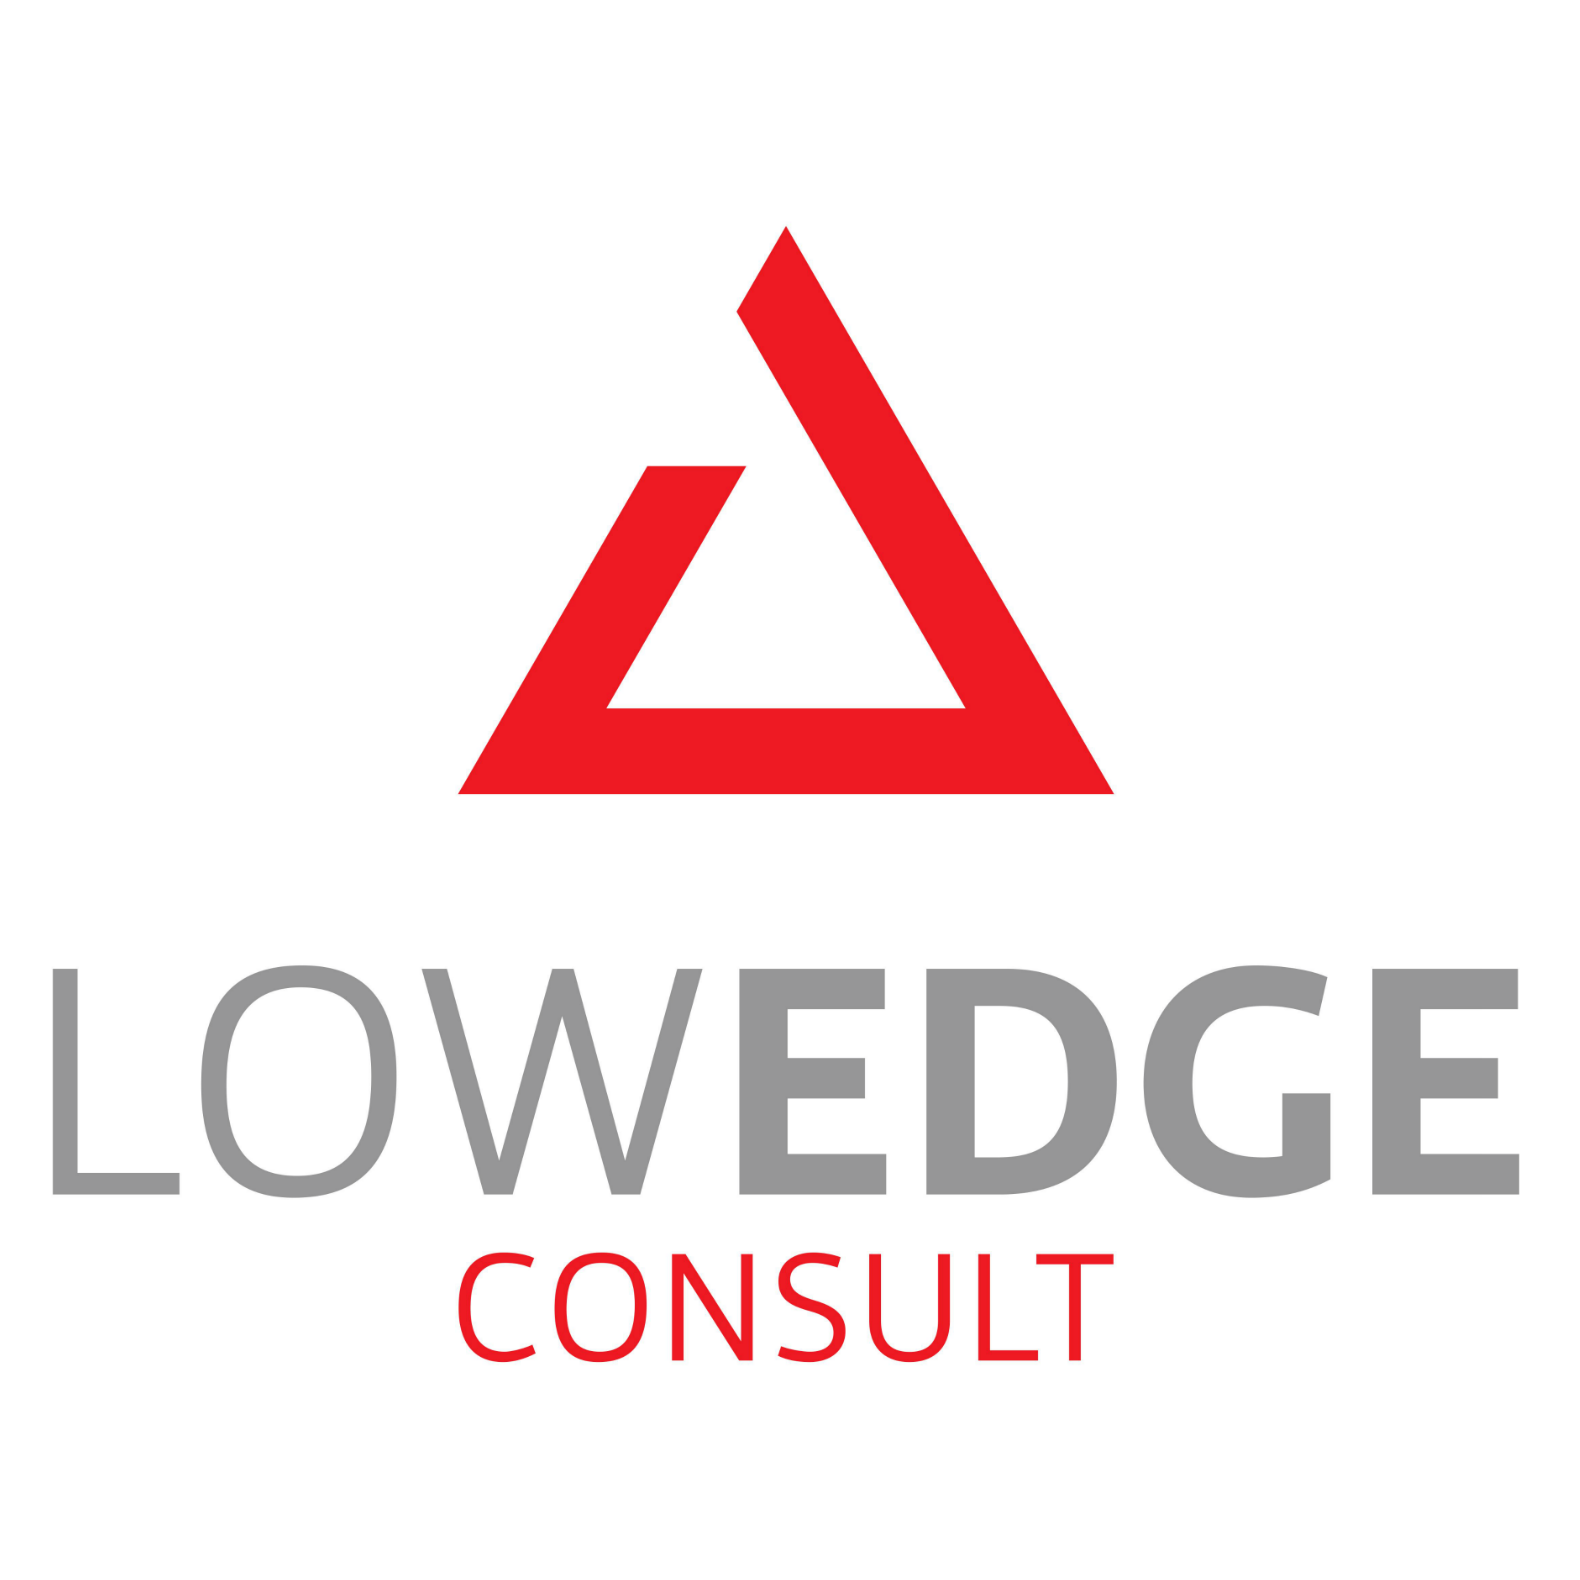 Low Edge Consult, Lda